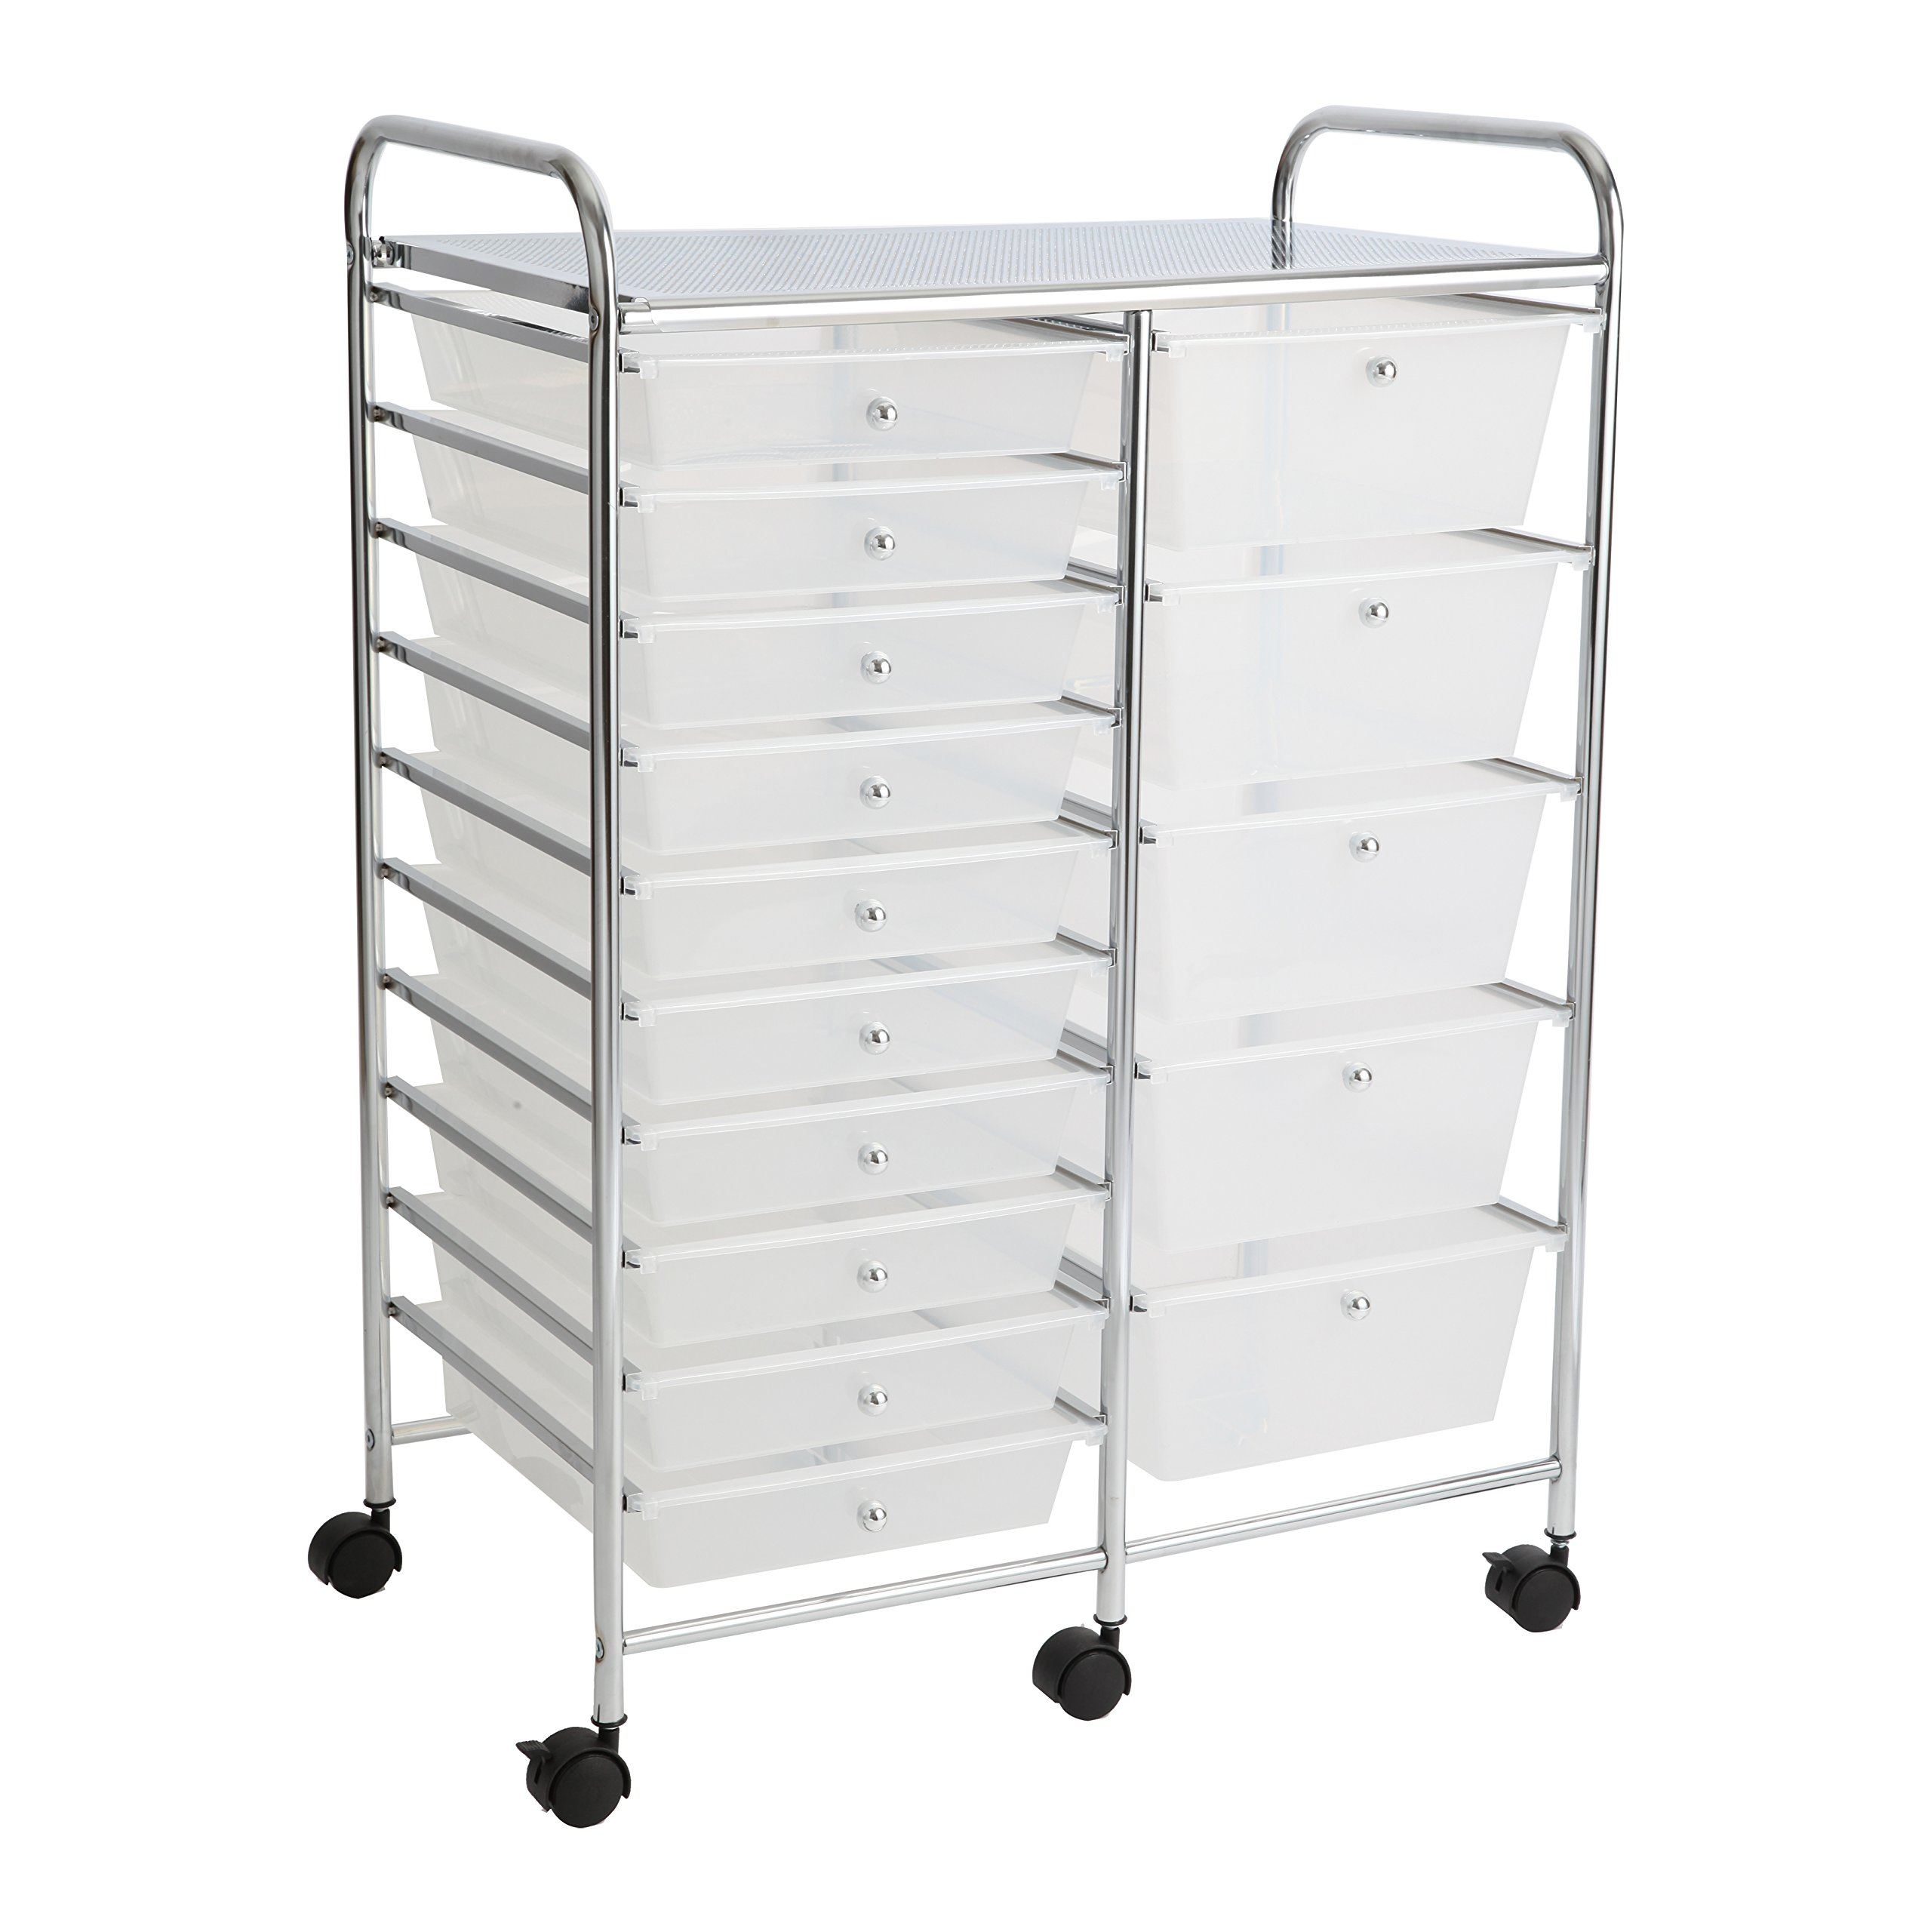 Finnhomy 15 Drawer Rolling Cart Organizer Storage Cart with Drawers Utility Cart for School Office Home Beauty Salon Storage Semi-Transparent White